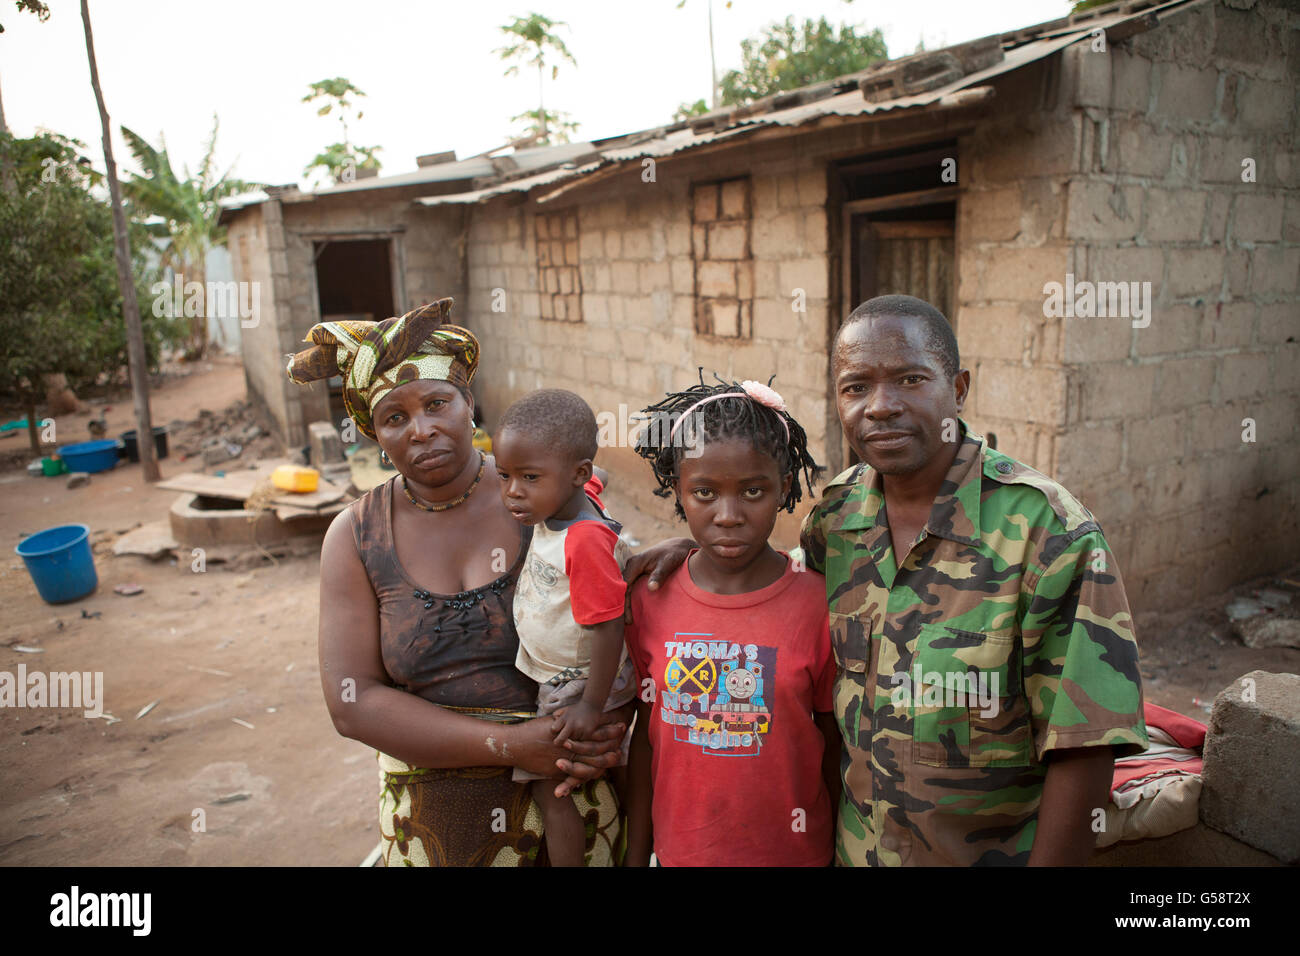 A family stands together outside their house in Nampula, Mozambique. - Stock Image